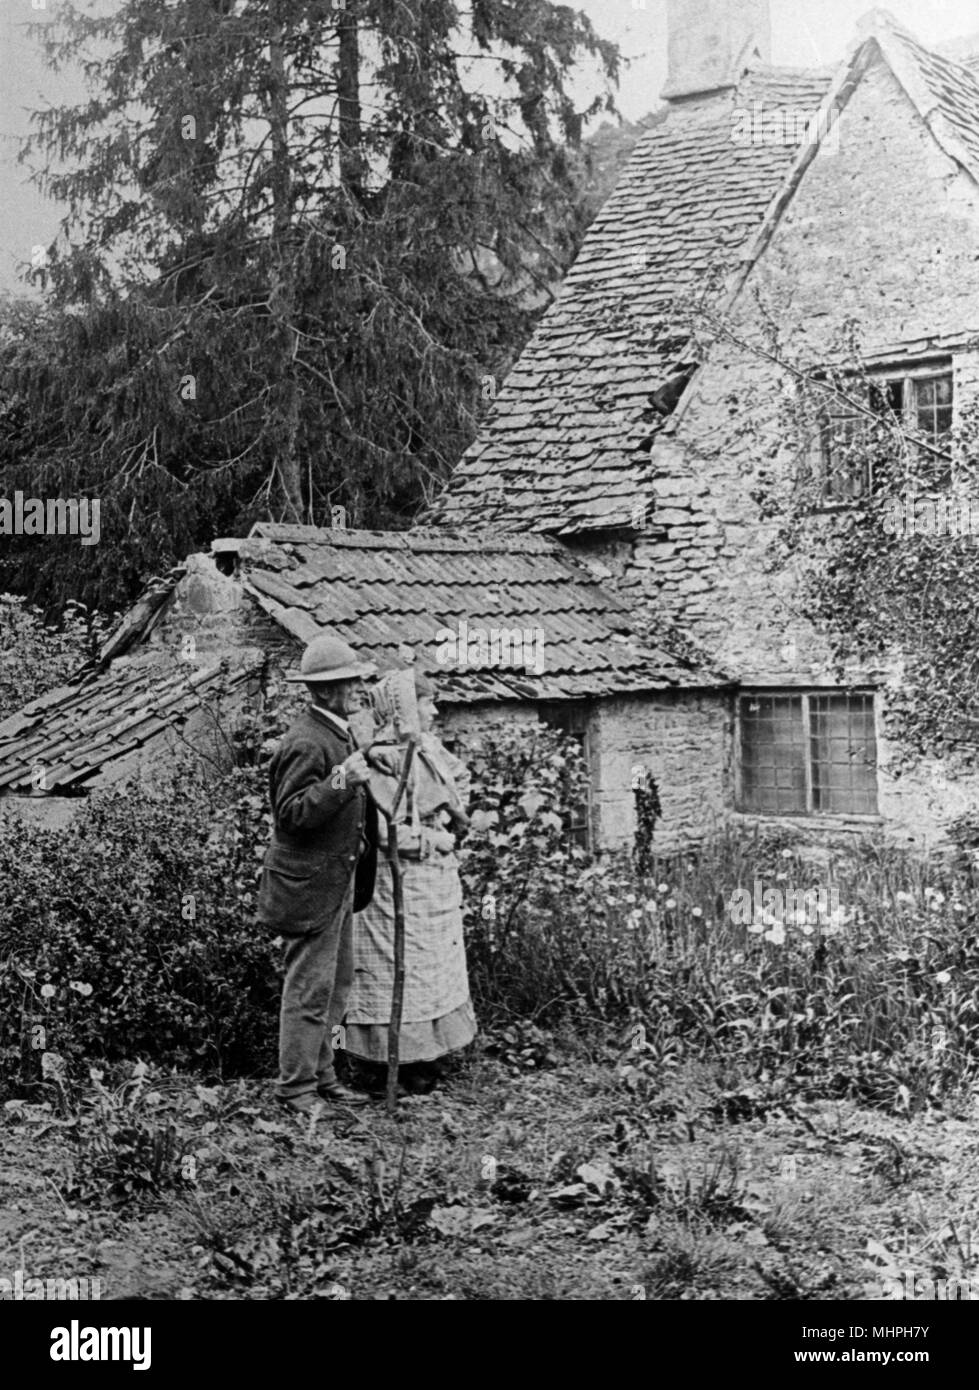 An old couple outside their rural cottage, 1890s     Date: 1890s - Stock Image